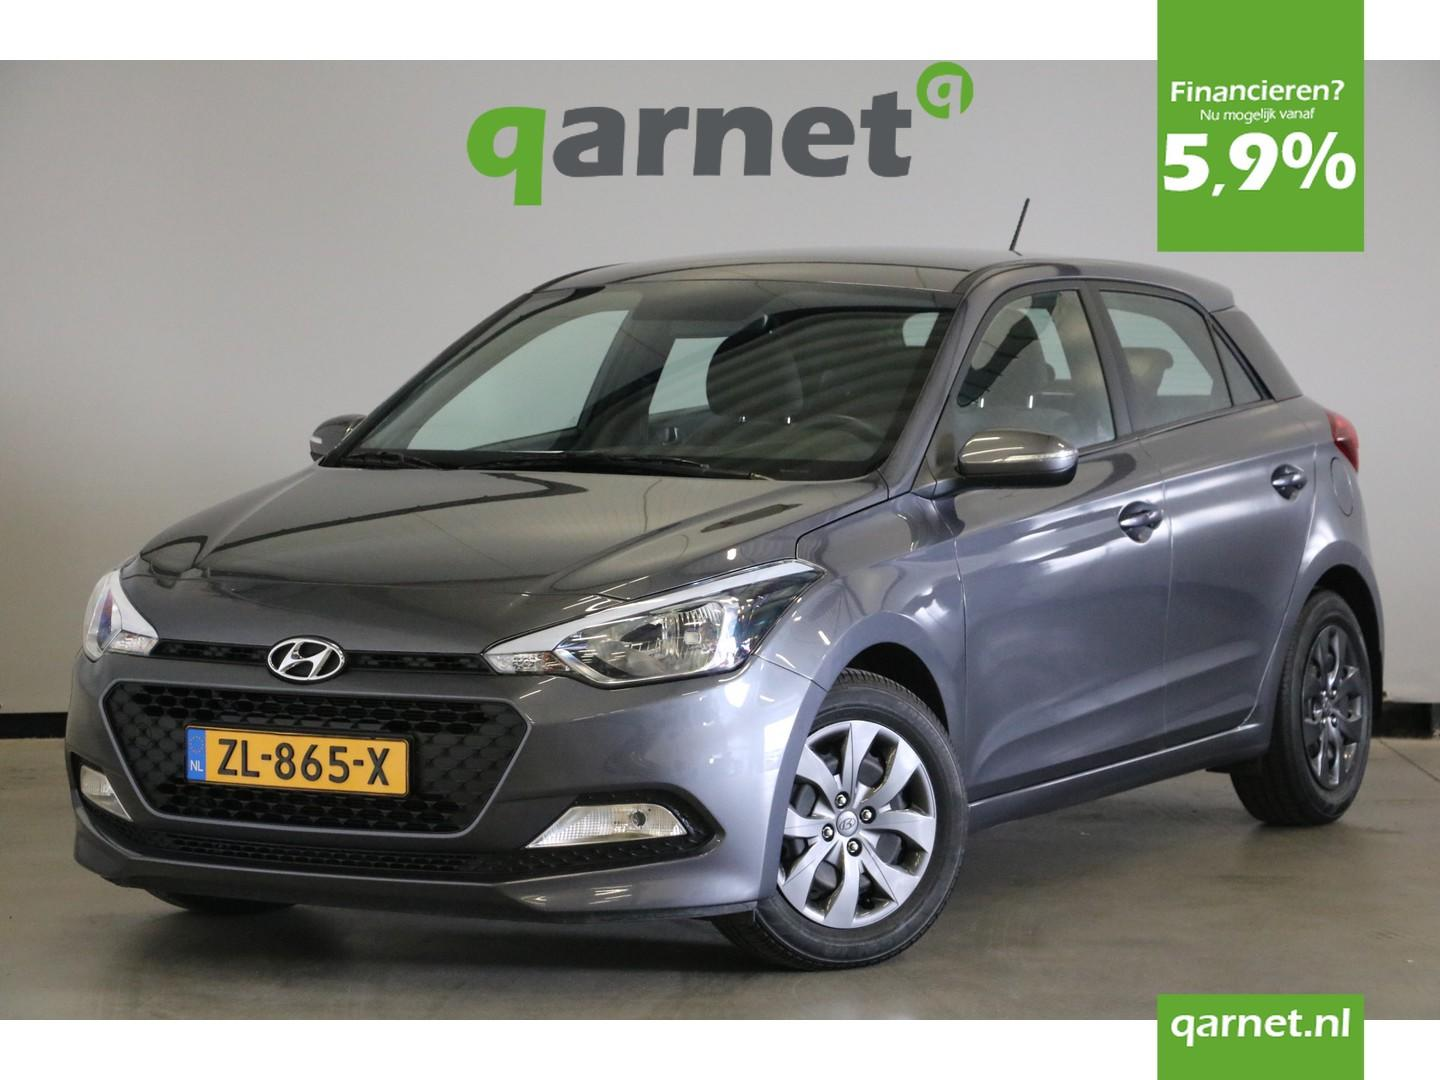 Hyundai I20 Active 1.2 lp 75pk i-drive cool